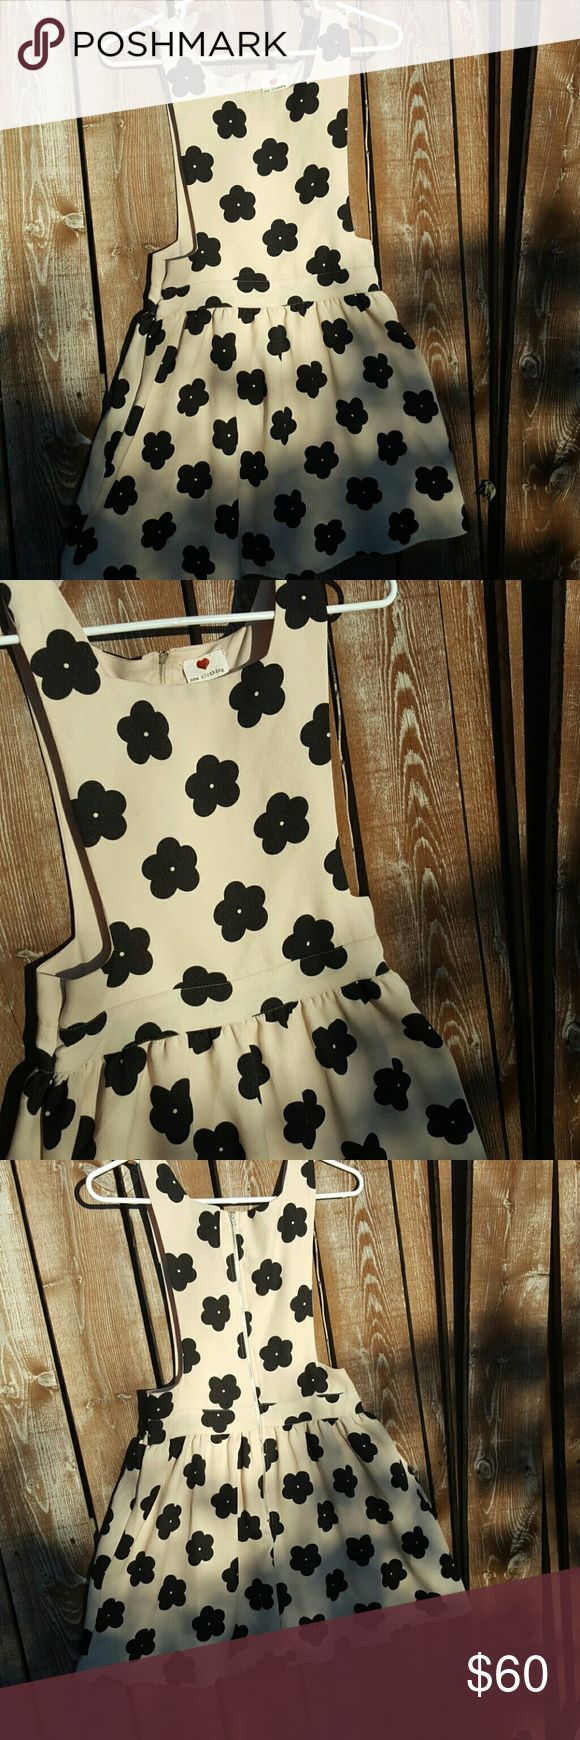 Cocktail dress Beautiful cream cocktail dress with cute black flowers. So pretty flared out and the zipper goes almost all the way down in the back. No stains in excellent condition! one clothing Dresses Mini